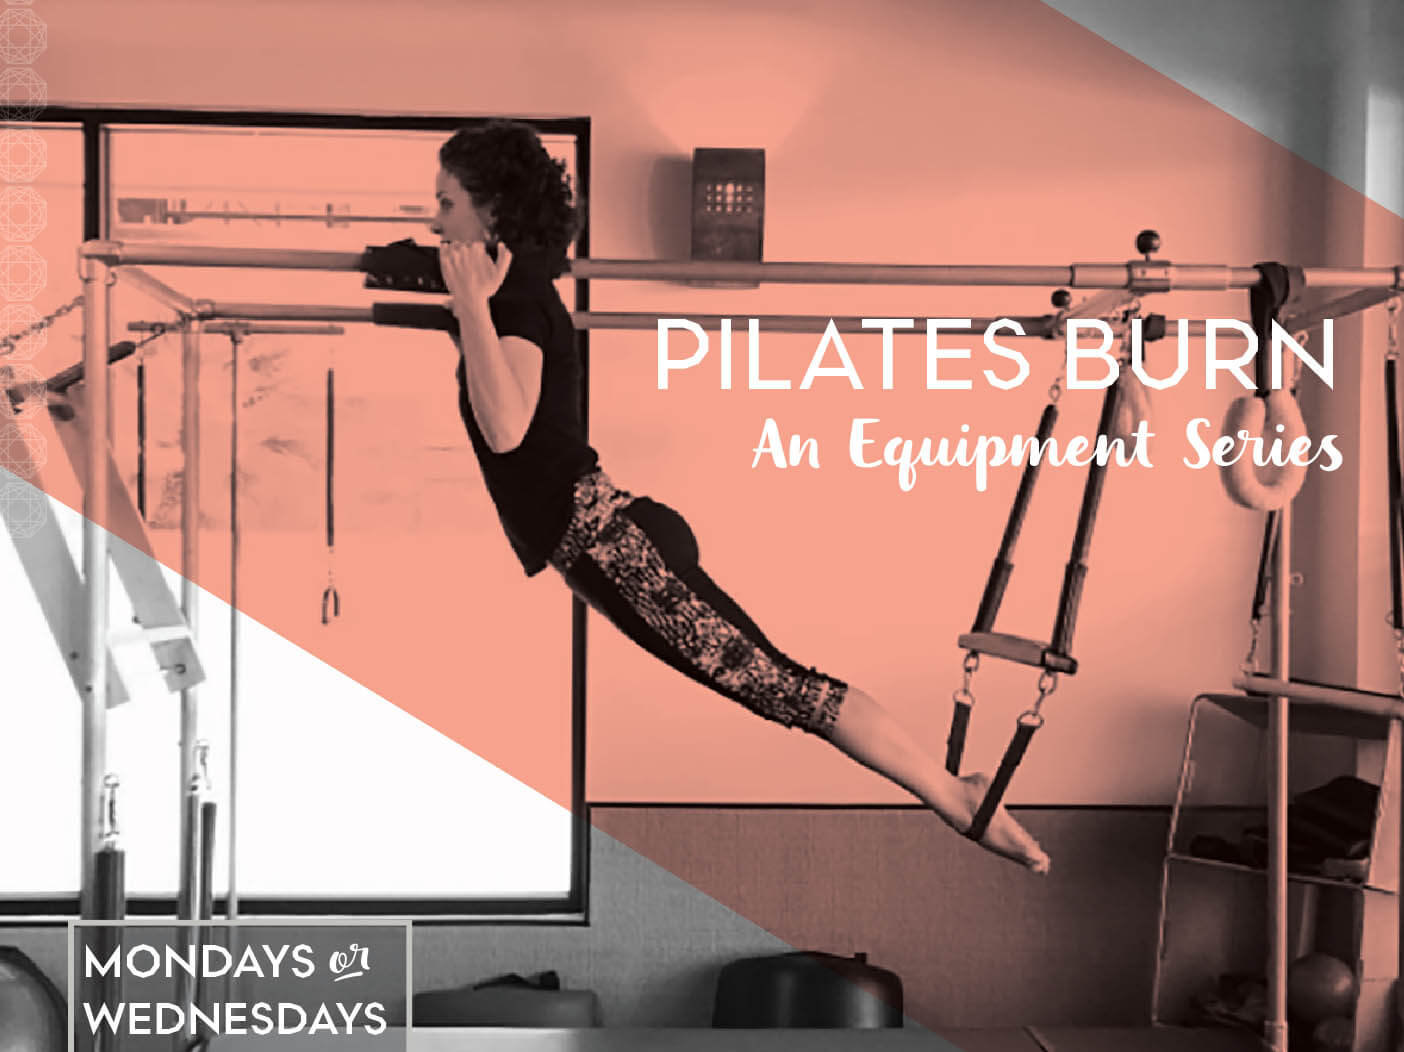 Pilates Burn: An Equipment Series